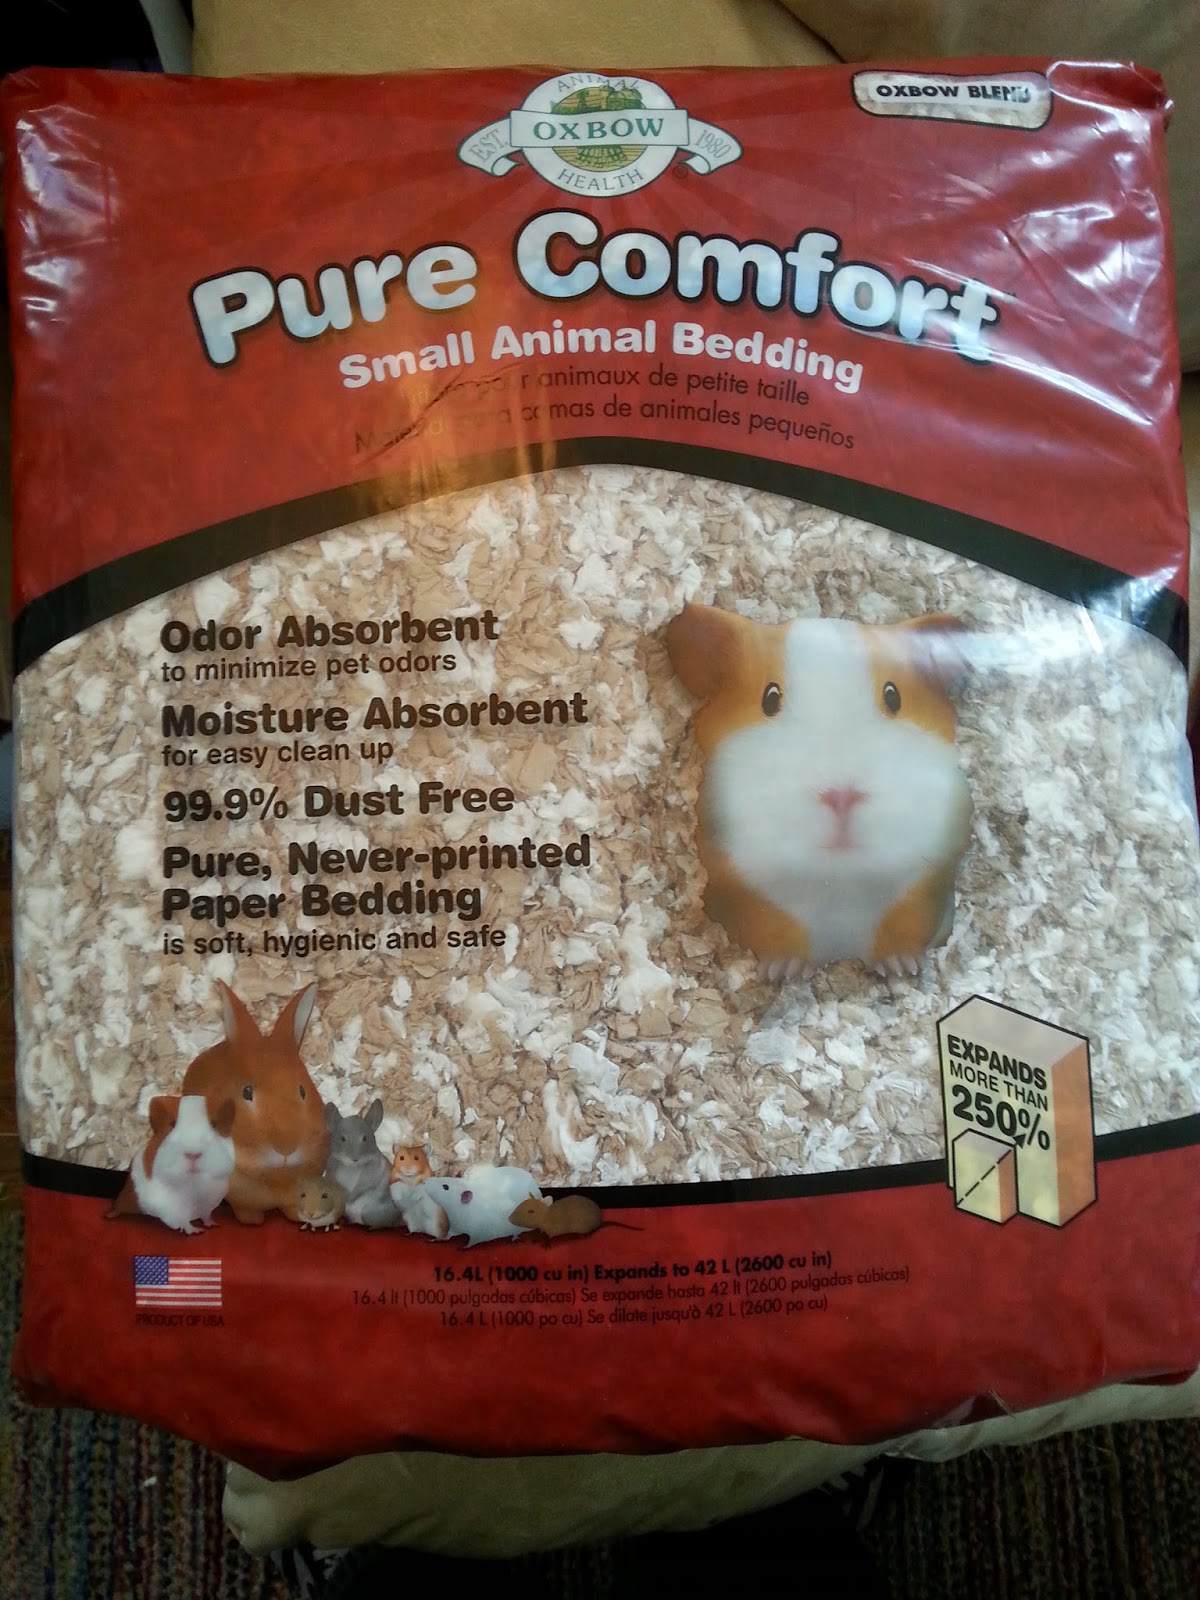 Cavy Savvy A Guinea Pig Blog Product Review Oxbow Pure fort